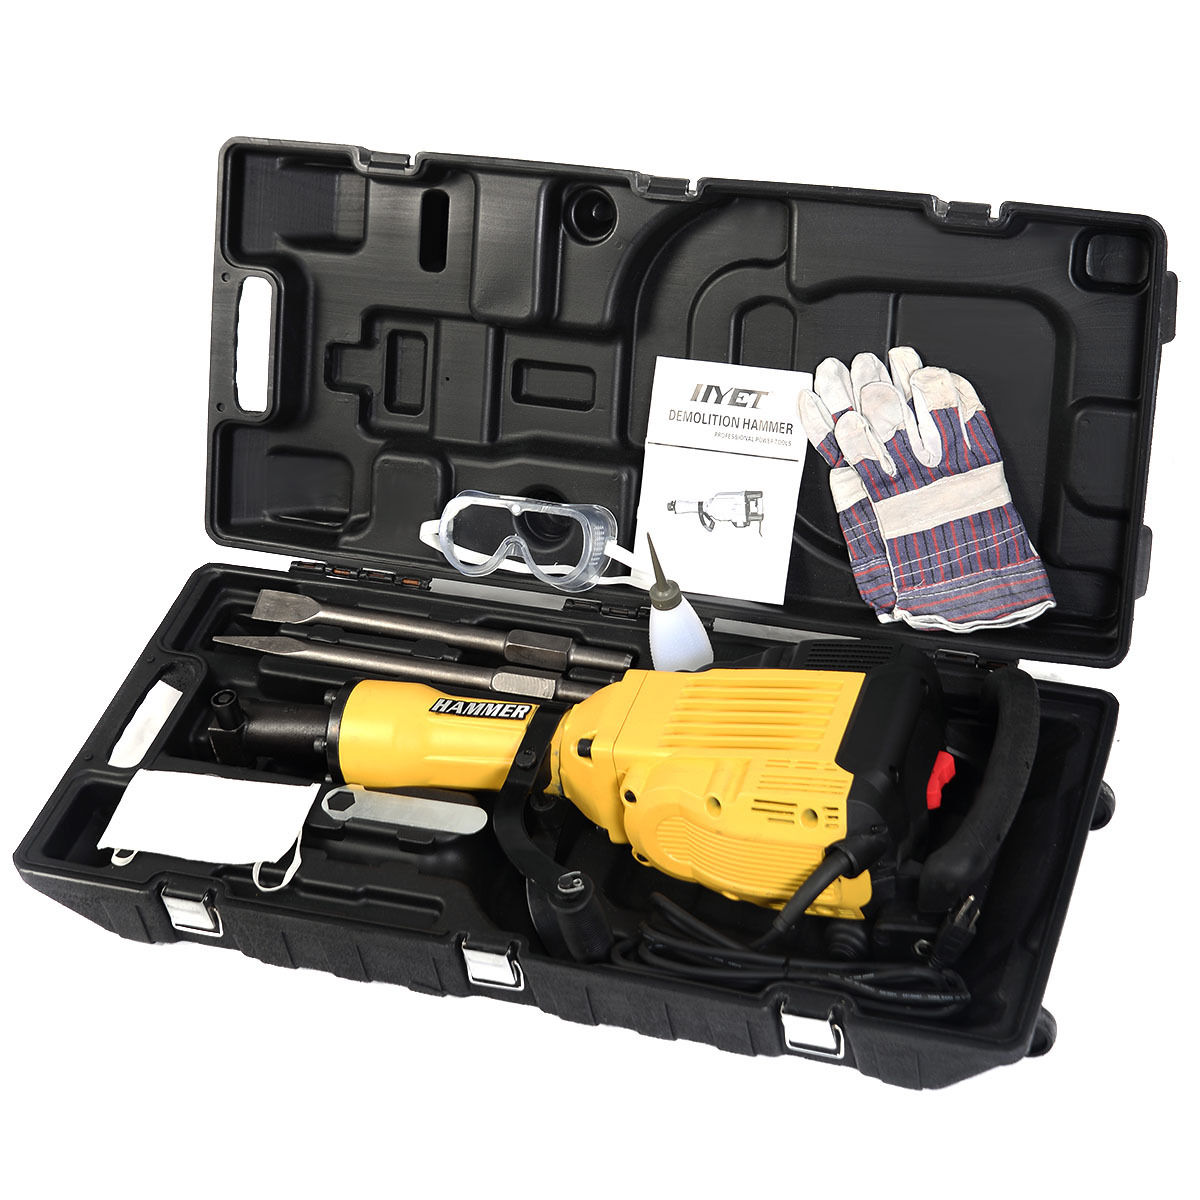 GHP 3600W 1400RPM Yellow Electric Demolition Hammer Concrete Breaker w Swivel Handle